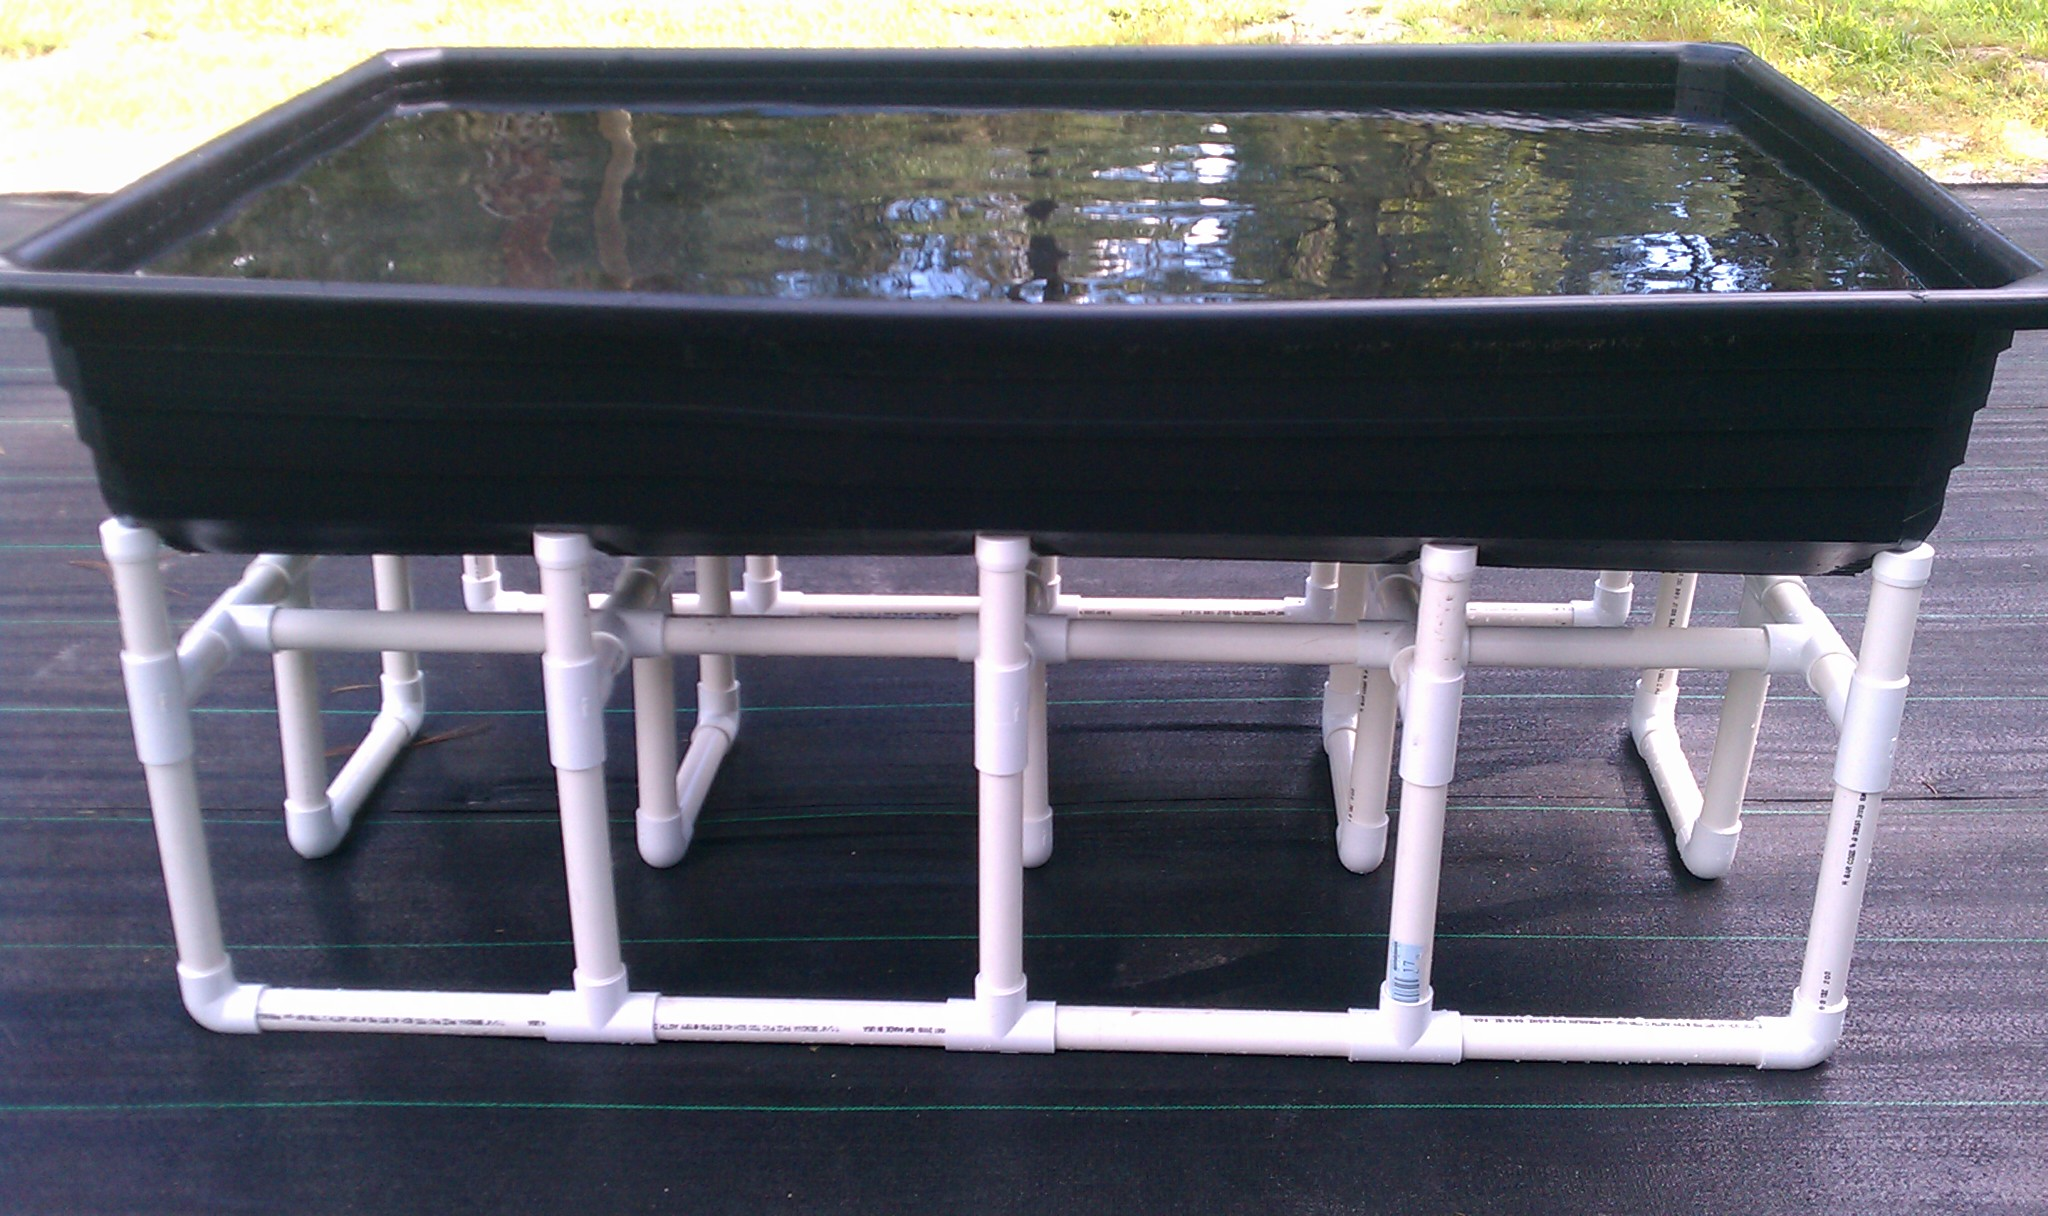 Building The Perfect Aquaponics Grow Bed System